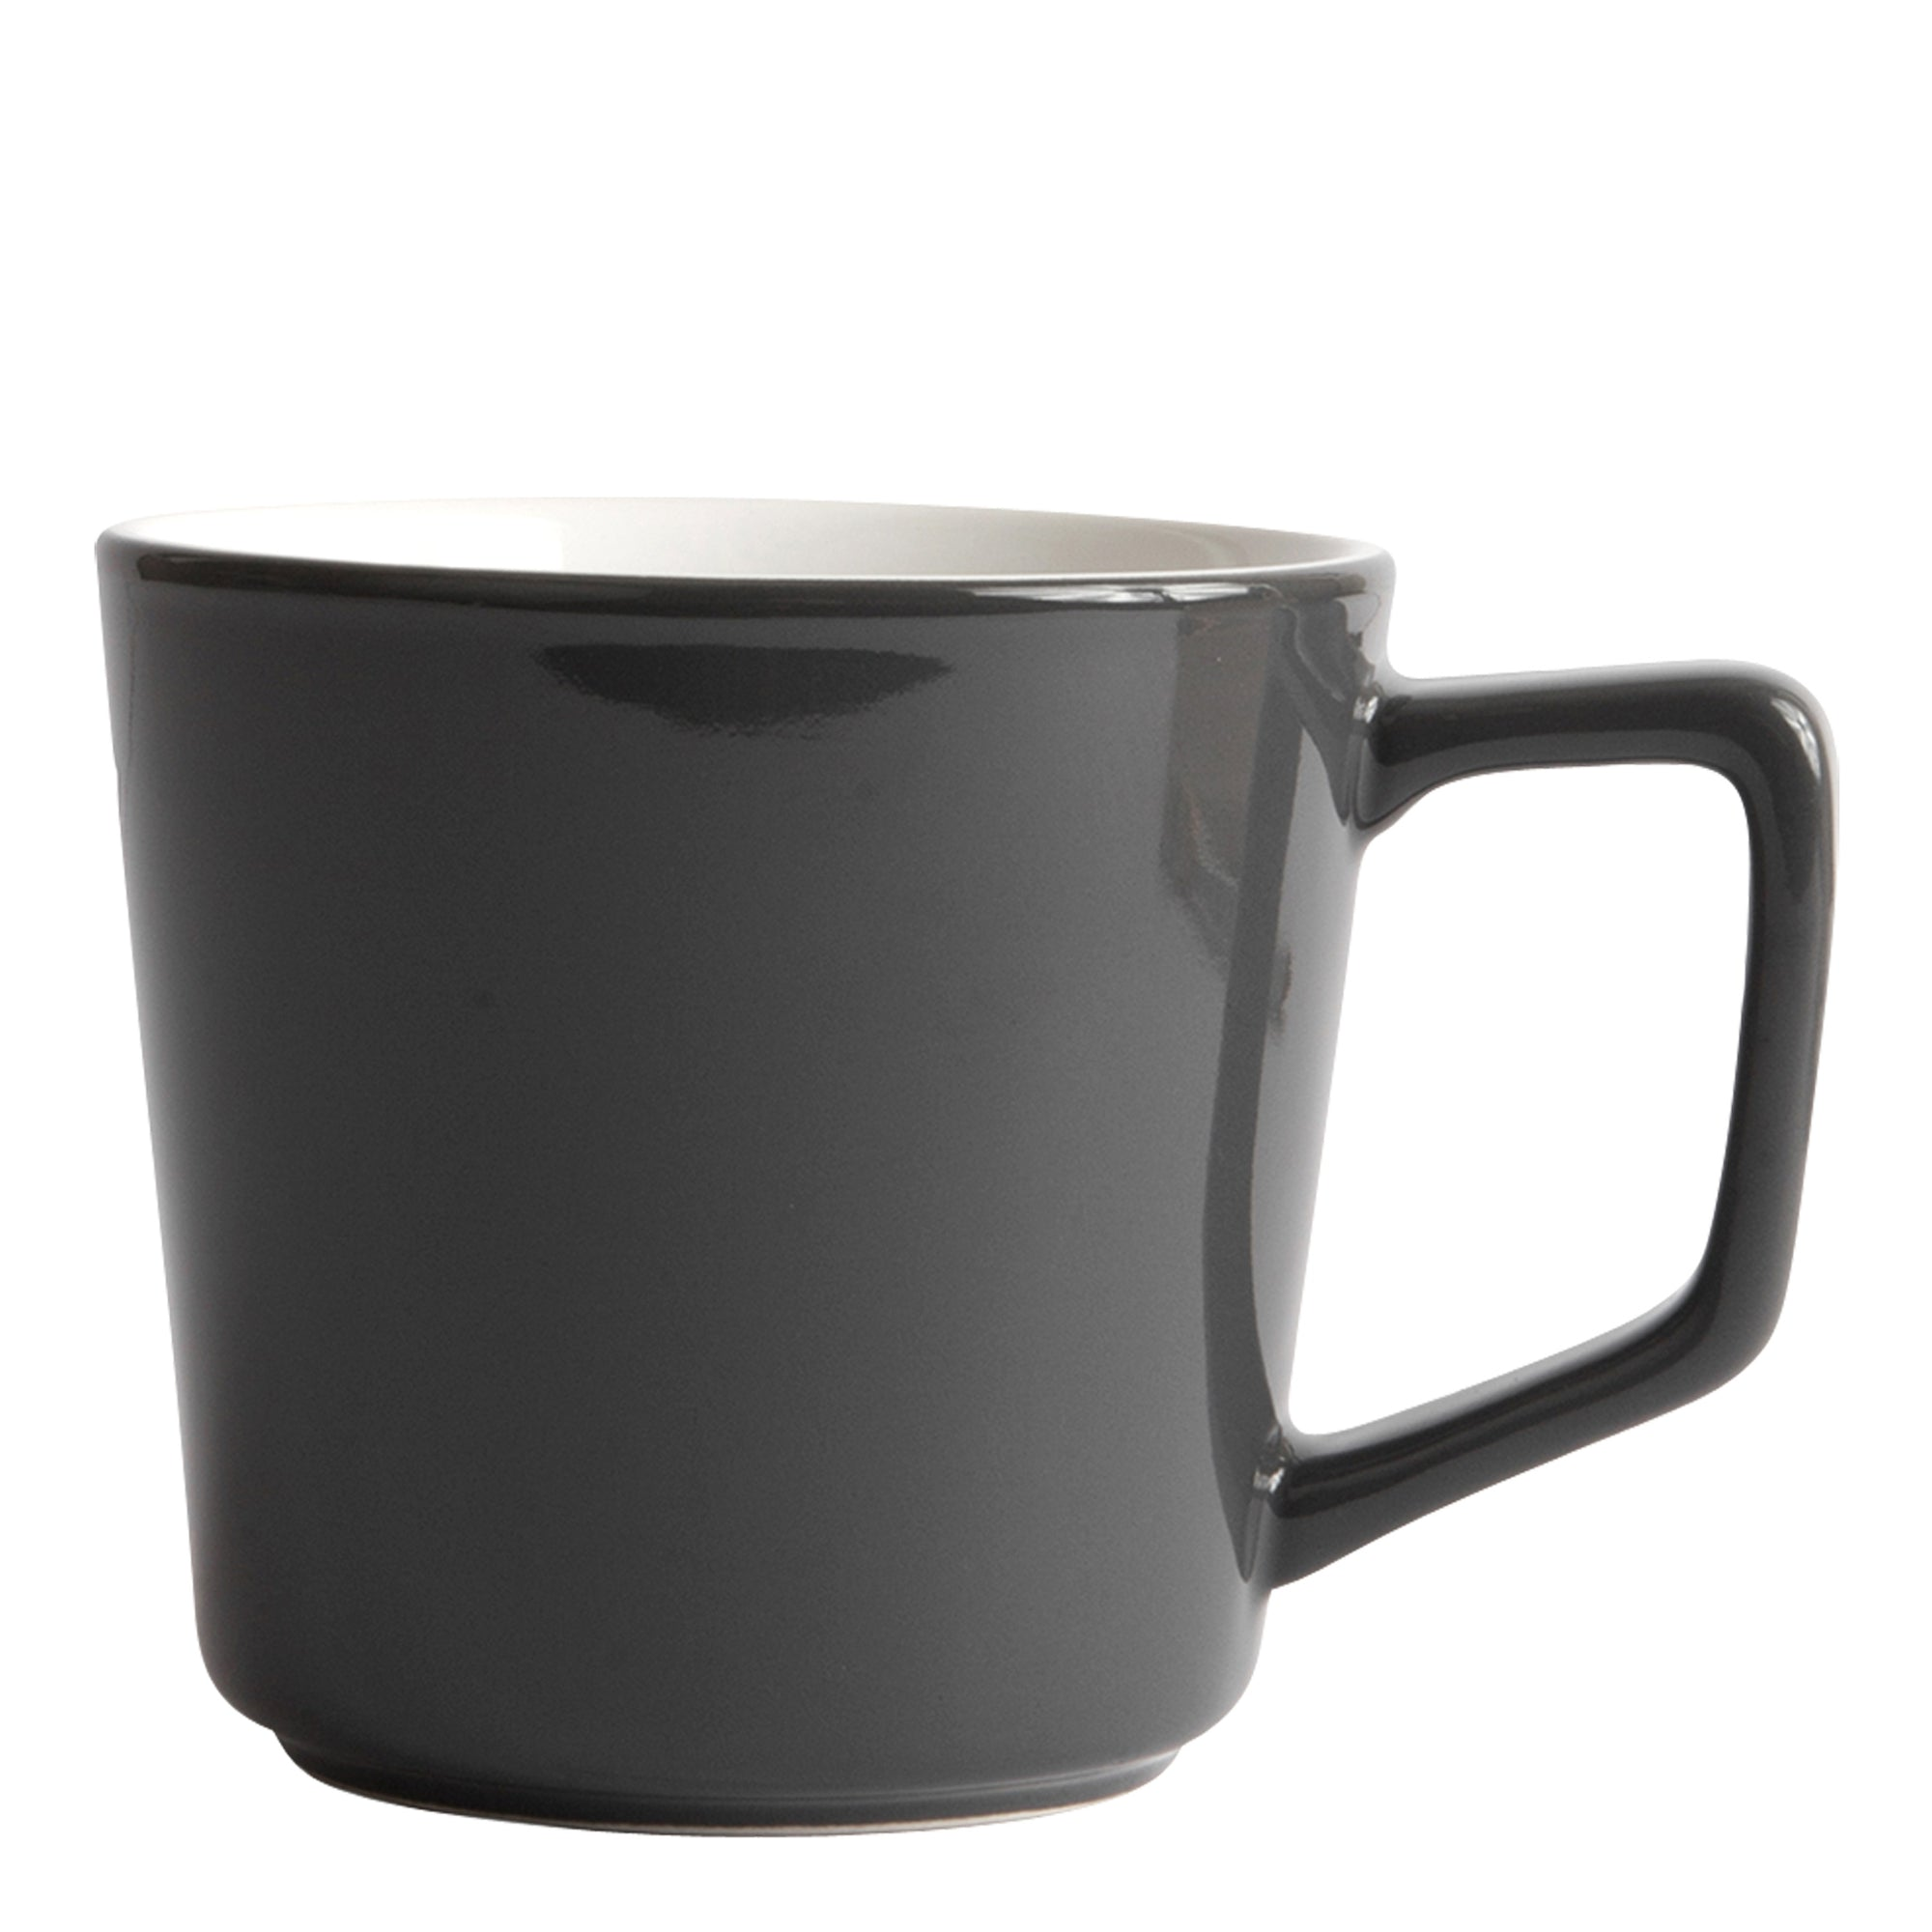 Created Co Angled Mug 12oz/ 36cl - gray - Espresso Gear